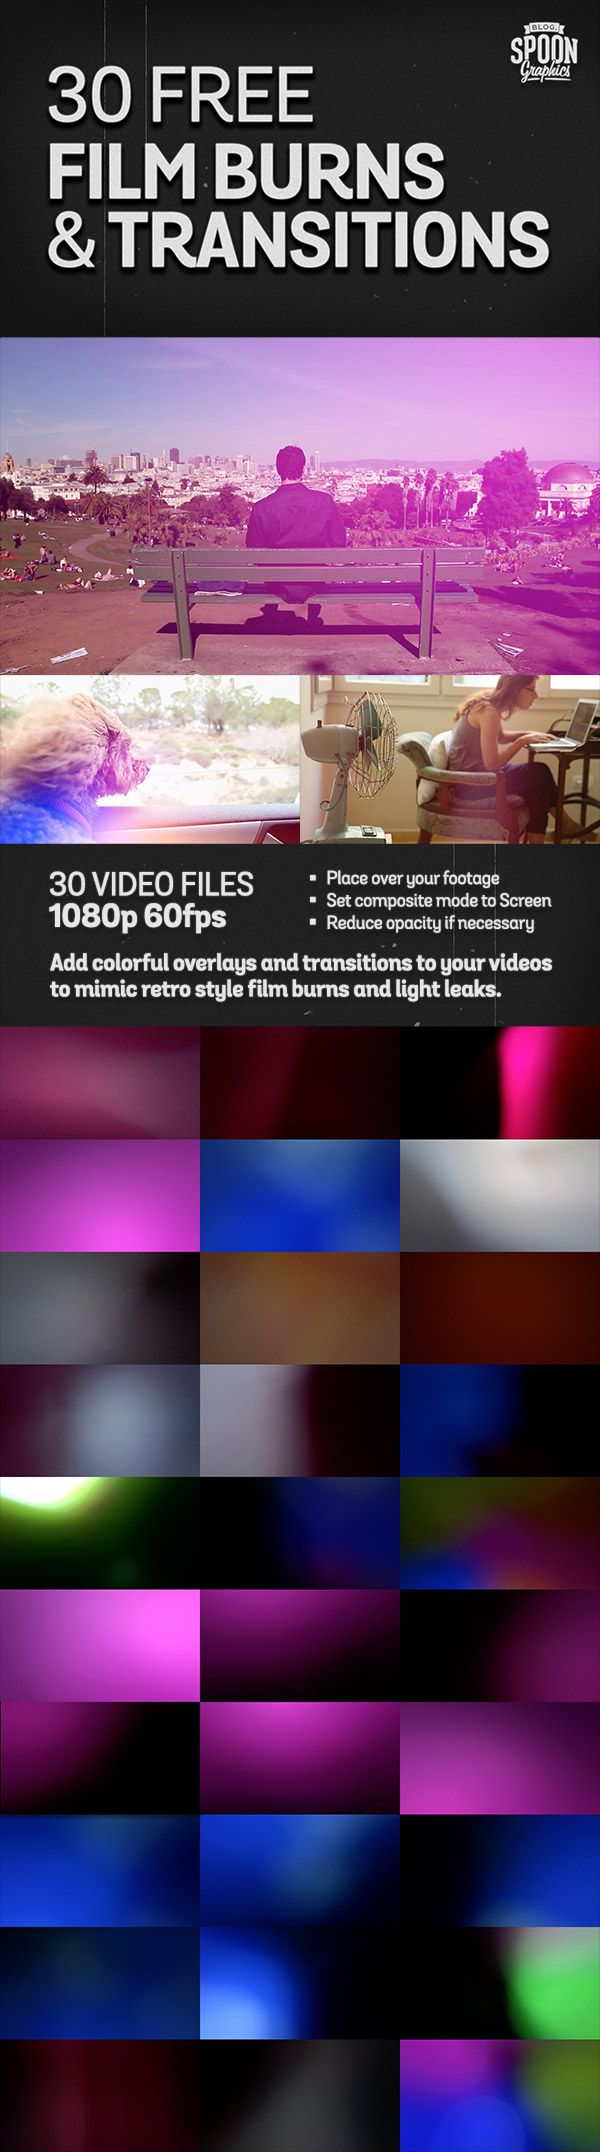 30 Free (!) Film Burns and Transitions For Video Editing